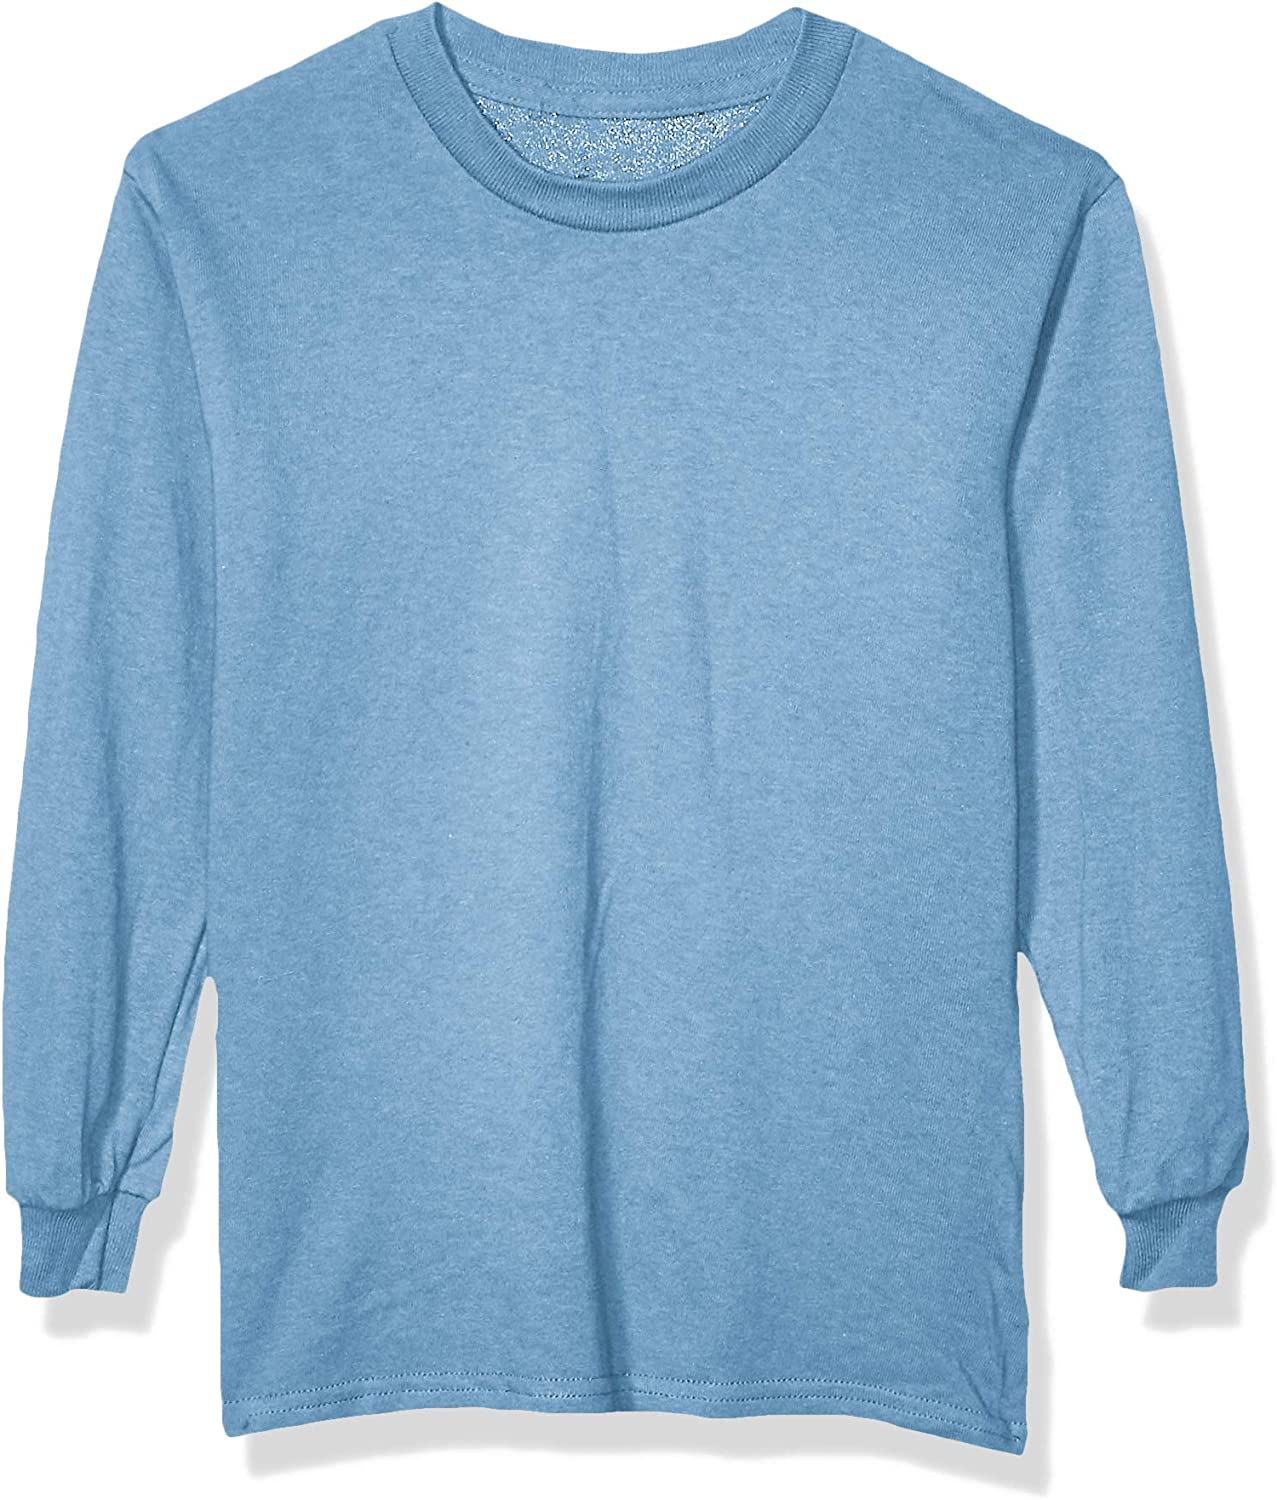 Soffe Big Boys Long Sleeve Cotton T-Shirt